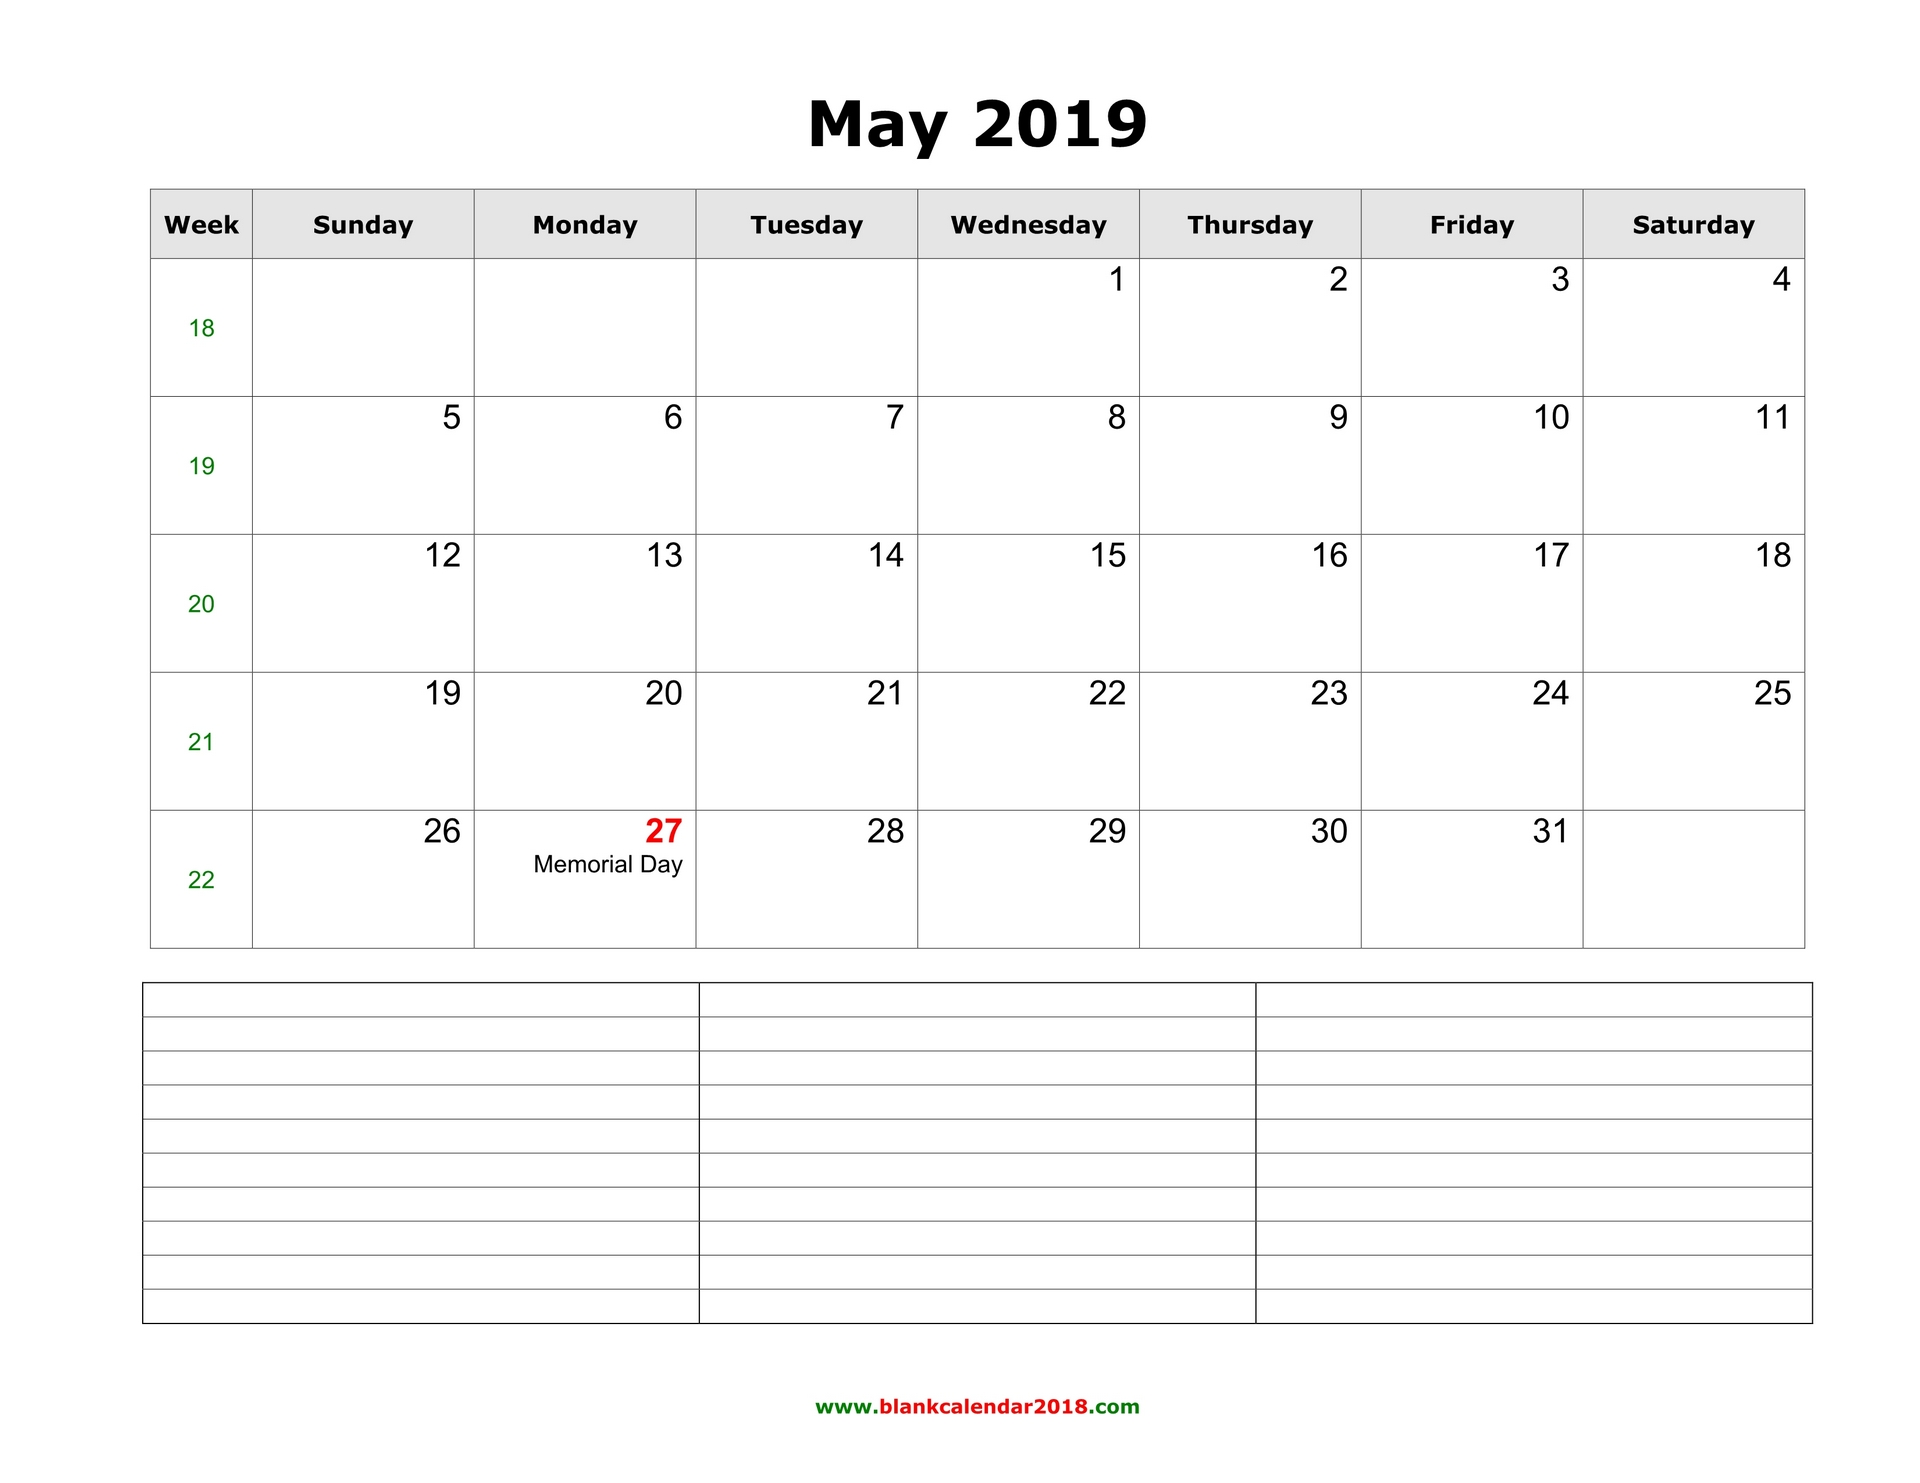 fillable blank calendar may 2019 with notes landscape